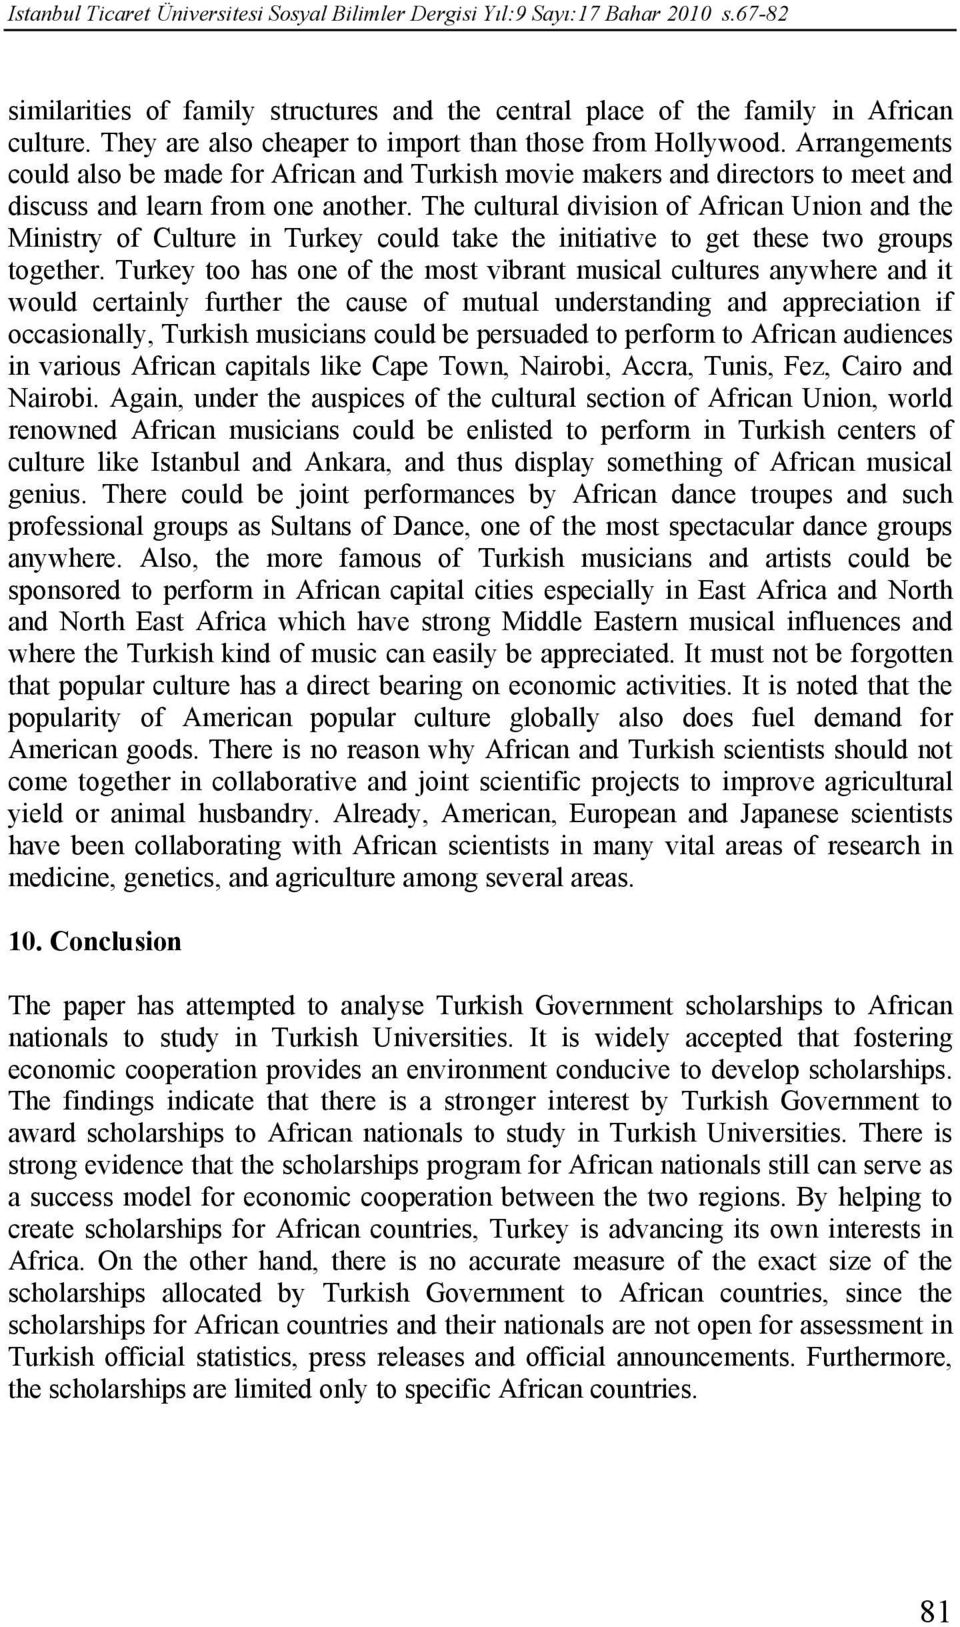 The cultural division of African Union and the Ministry of Culture in Turkey could take the initiative to get these two groups together.